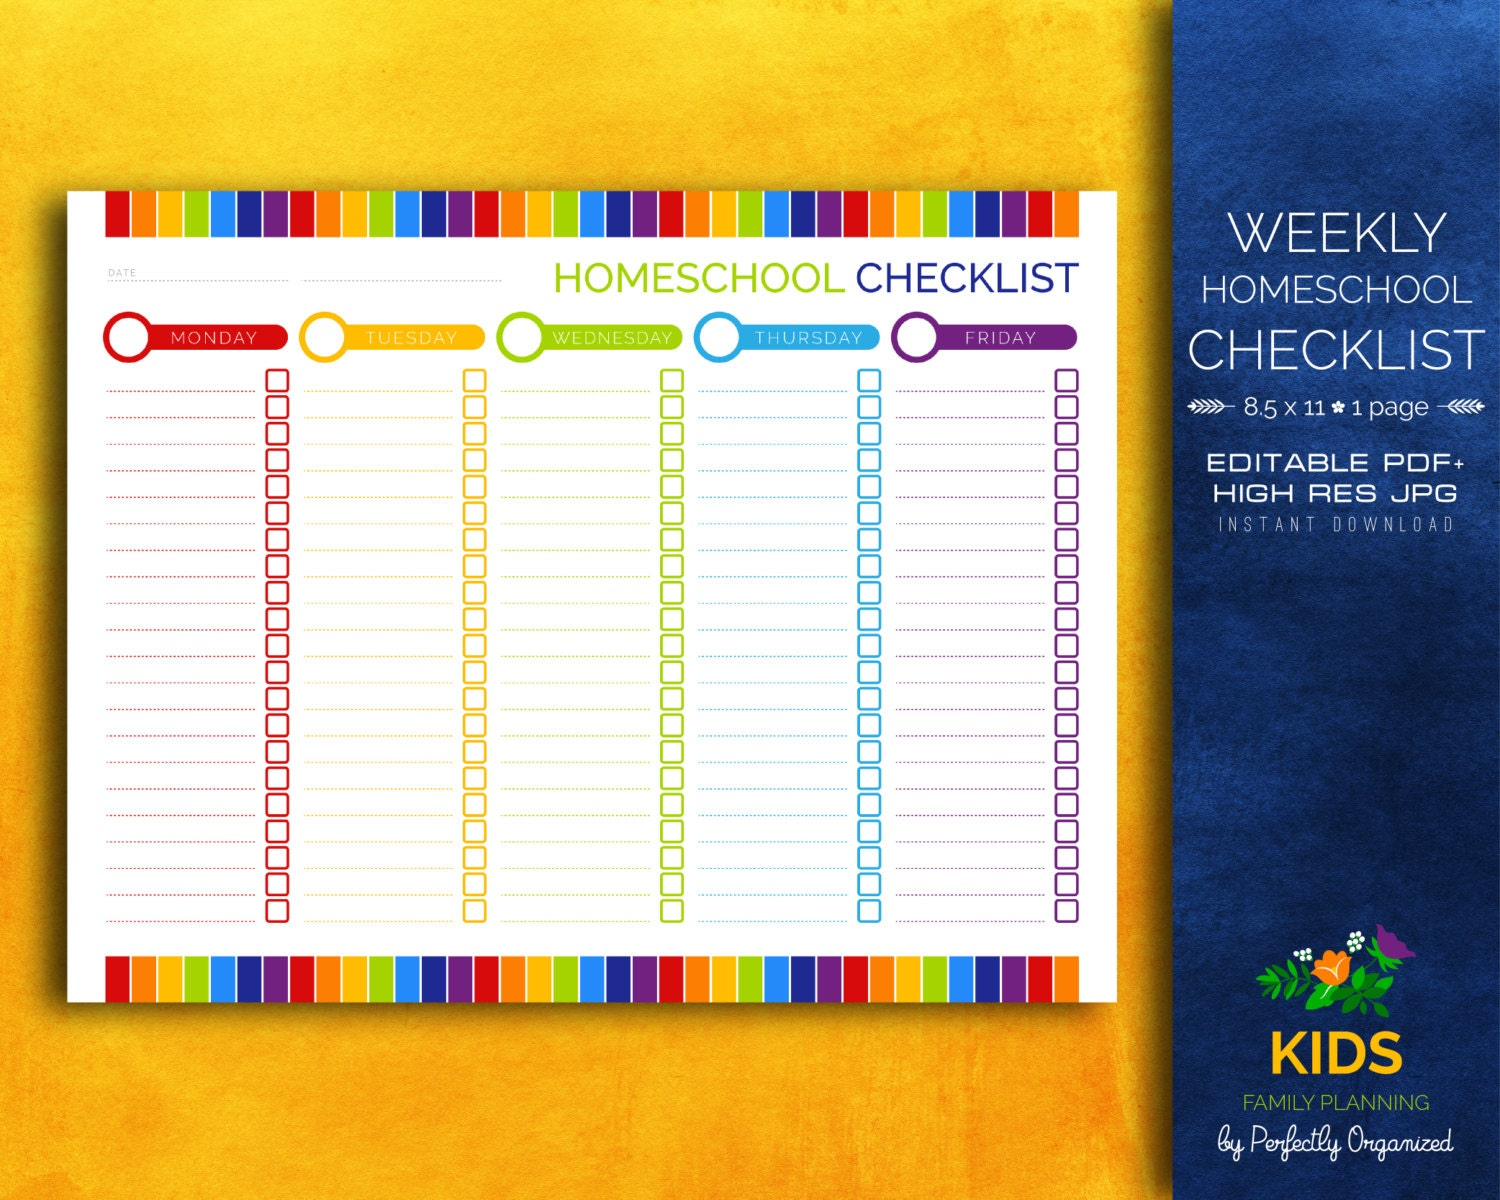 Weekly Homeschool Checklist Homeschool Lesson Plan Kids